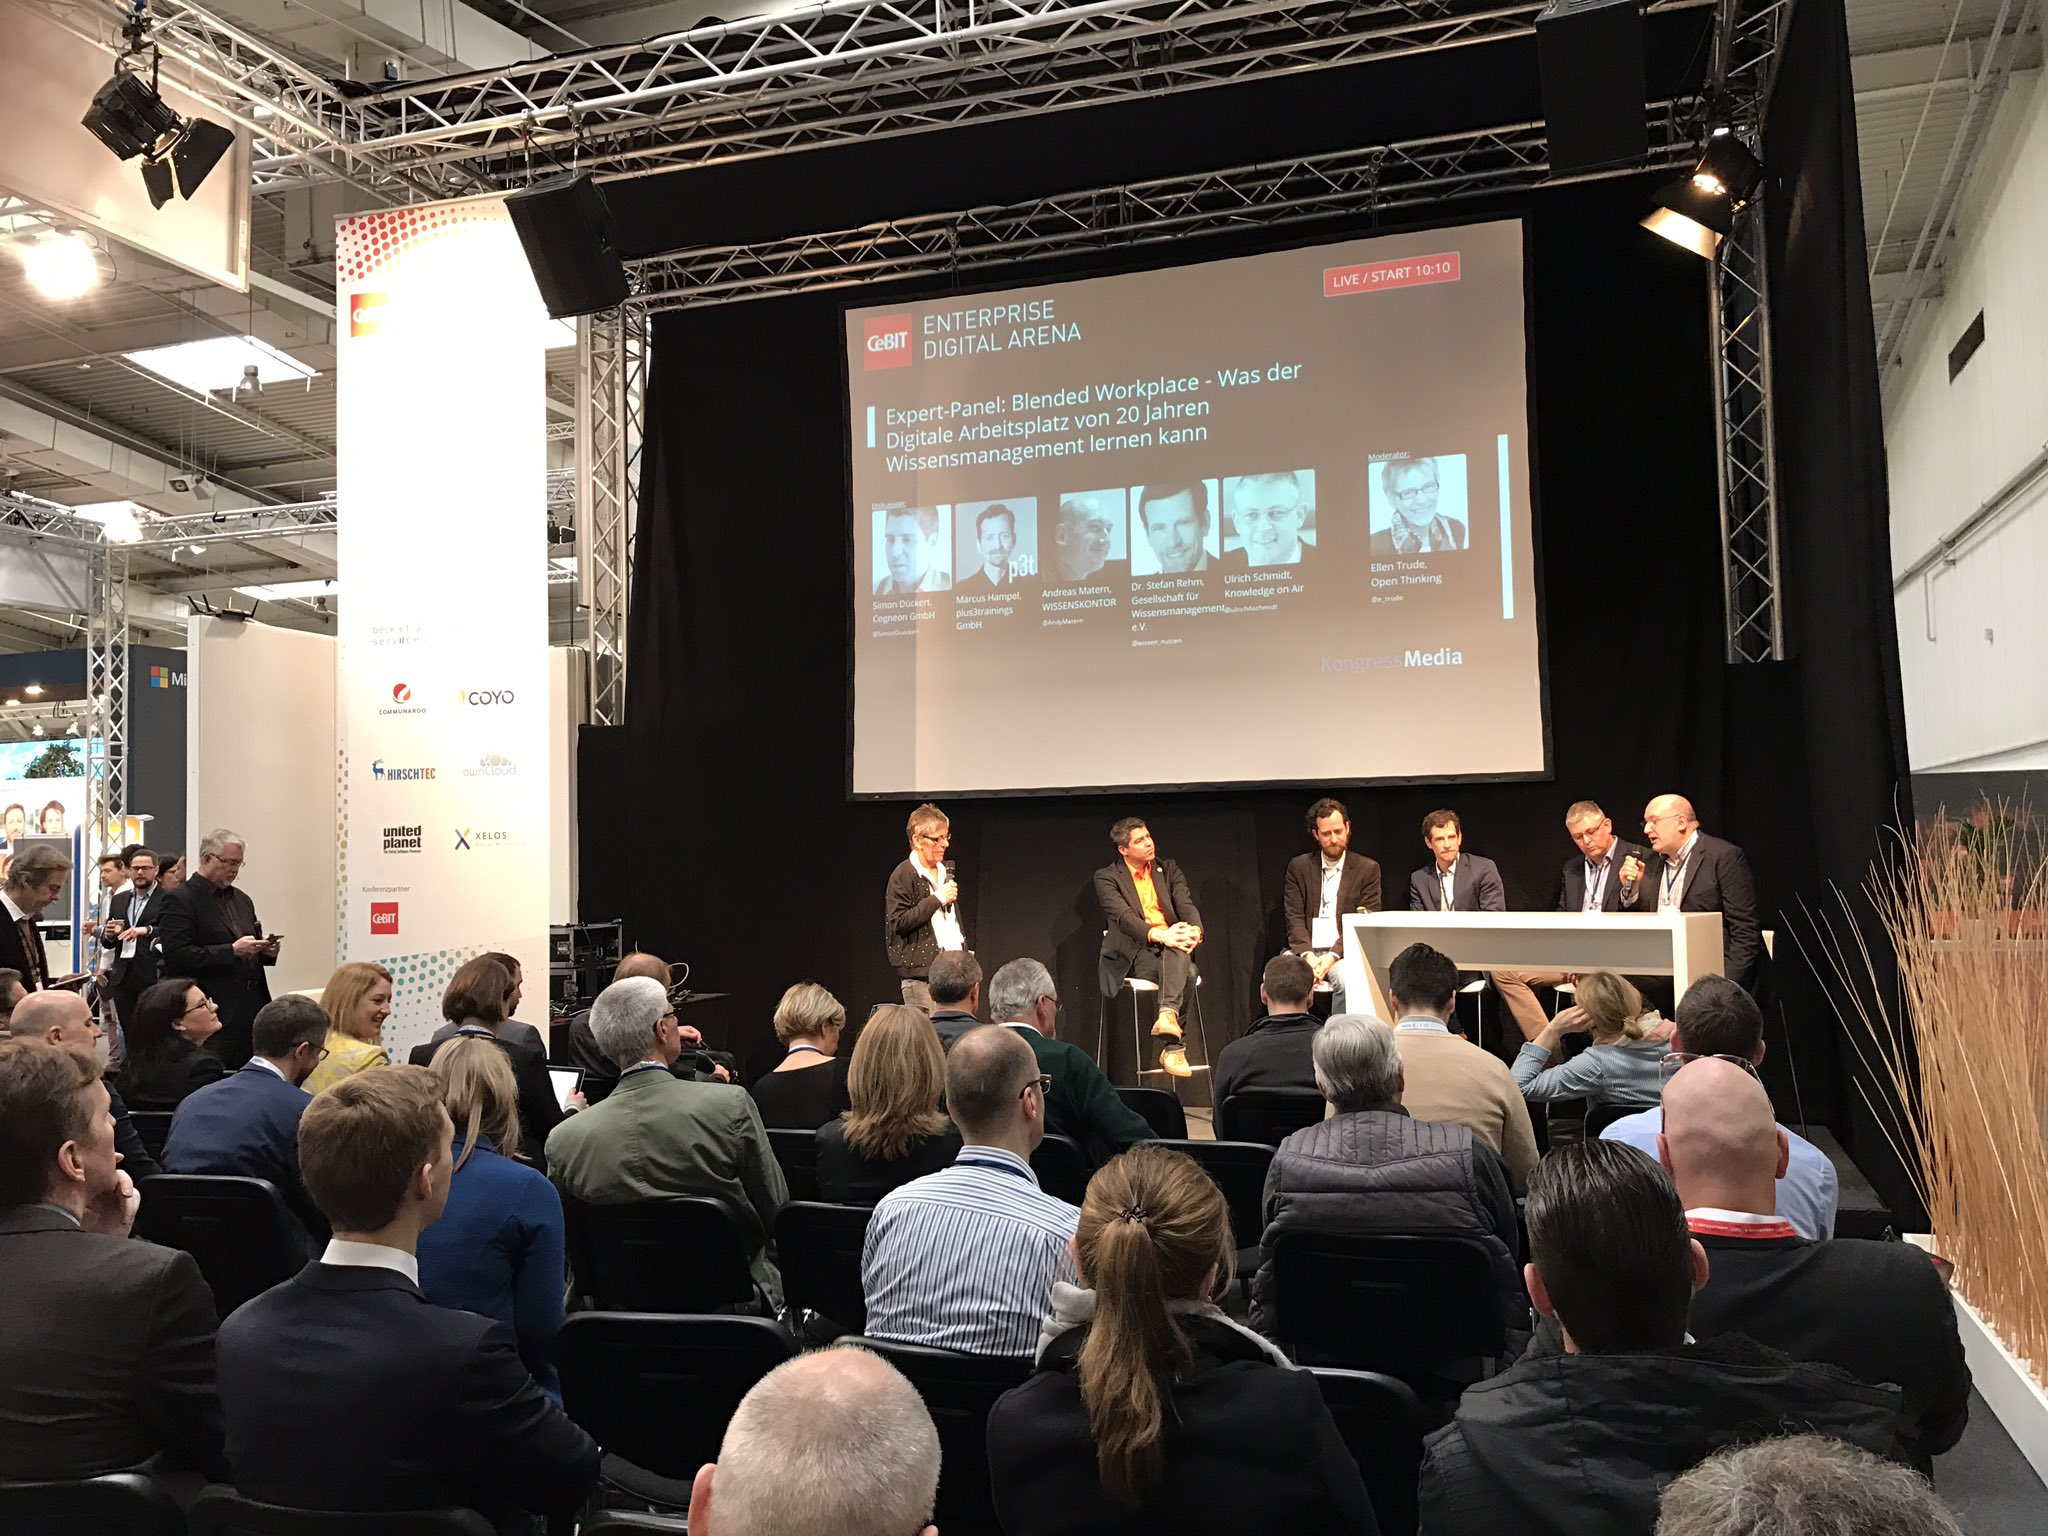 Full House zu #Wissensmanagement #cebiteda #CeBIT17 https://t.co/AN4qzJDCDM